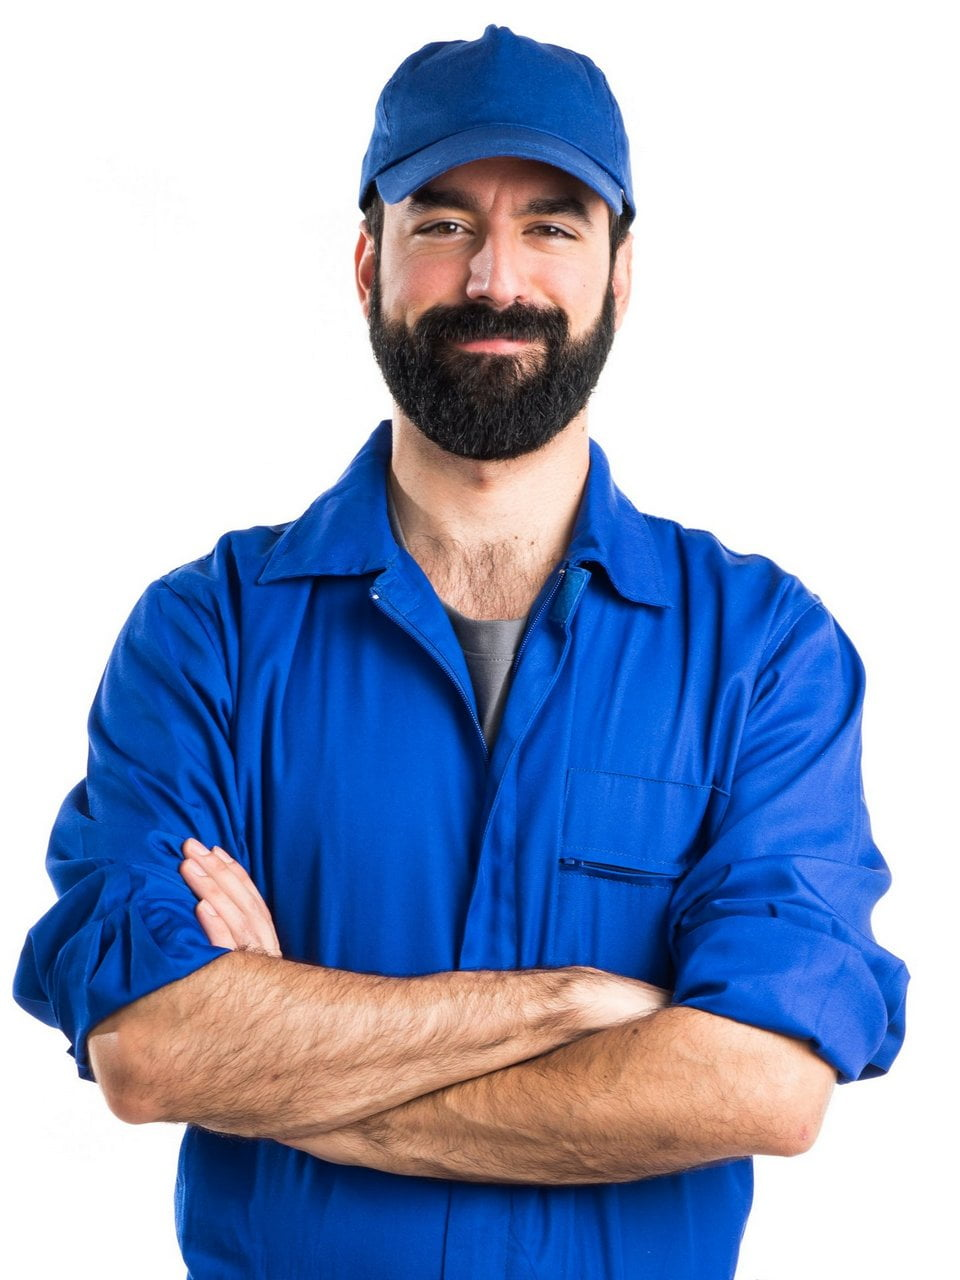 Plumber with his arms crossed